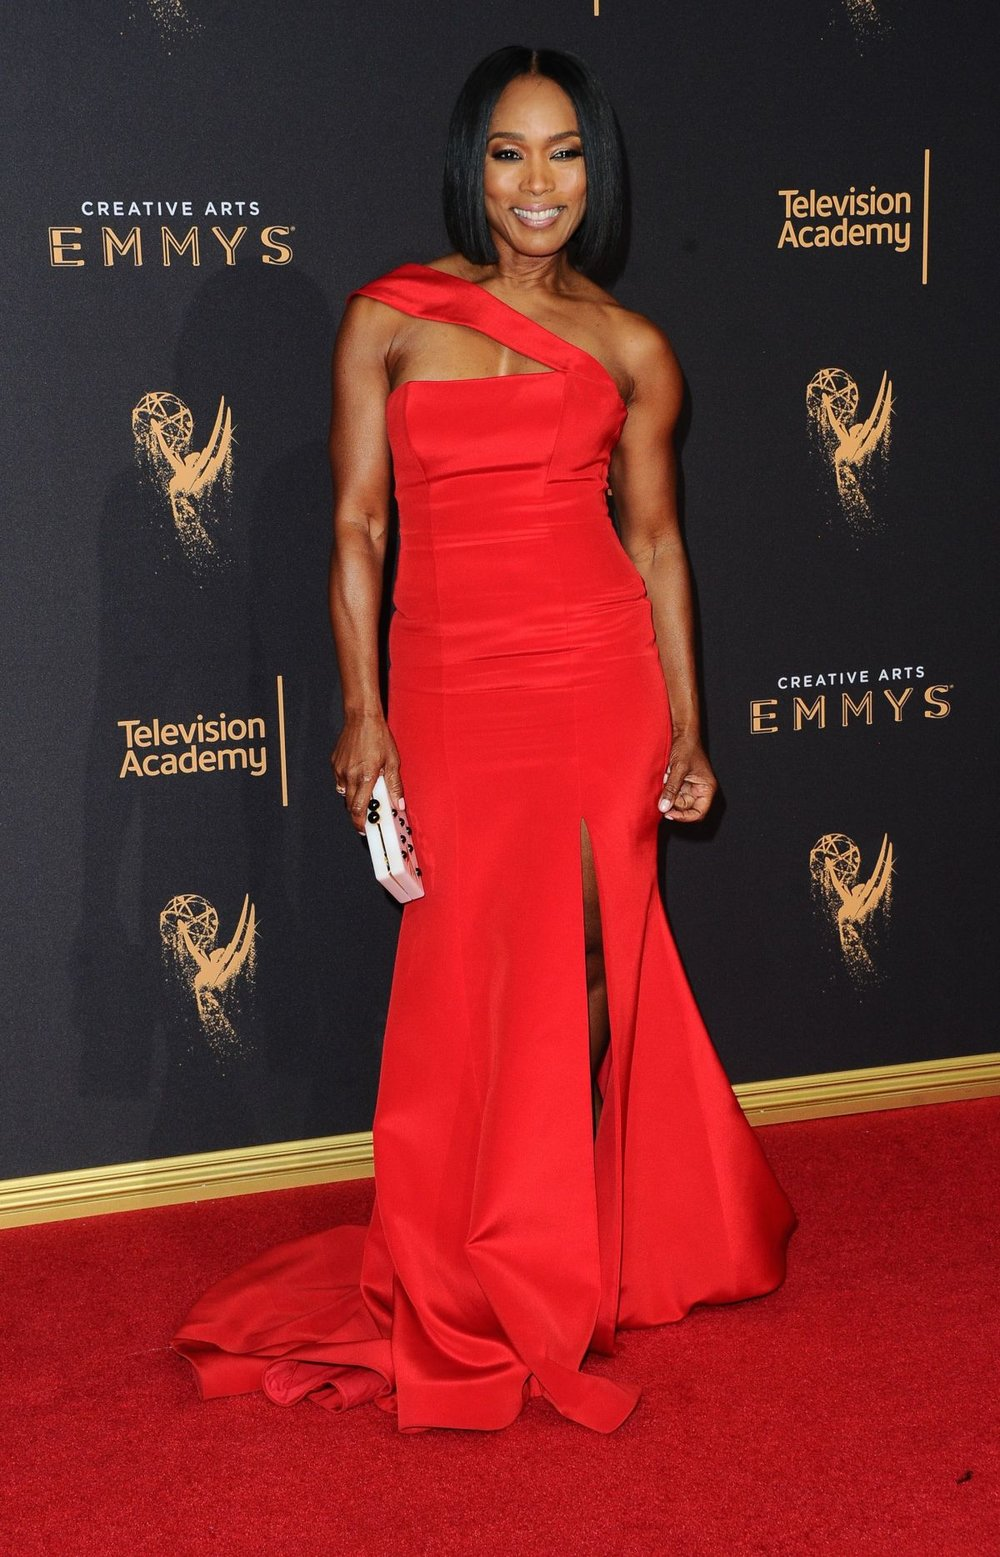 angela-bassett-at-creative-arts-emmy-awards-day-2-los-angeles_1.jpg